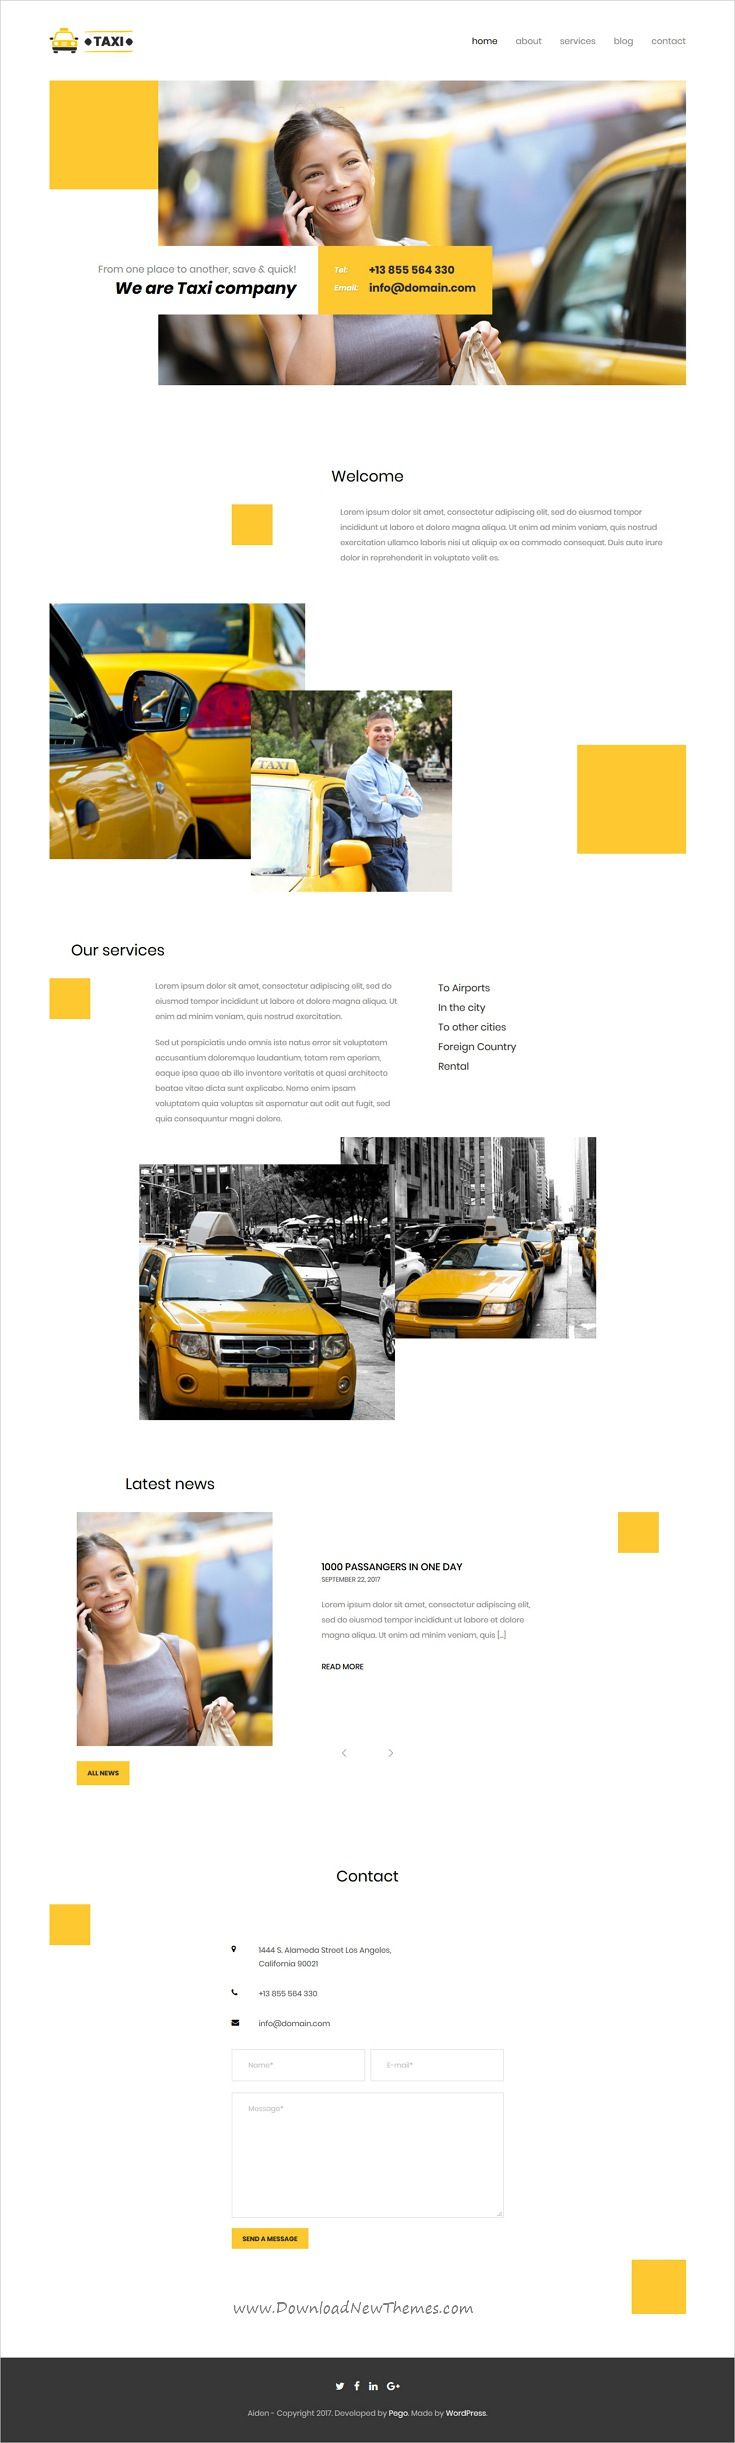 Aiden is clean, minimalistic and modern design 4in1 responsive WordPress theme for #taxi company website download now #webdesign